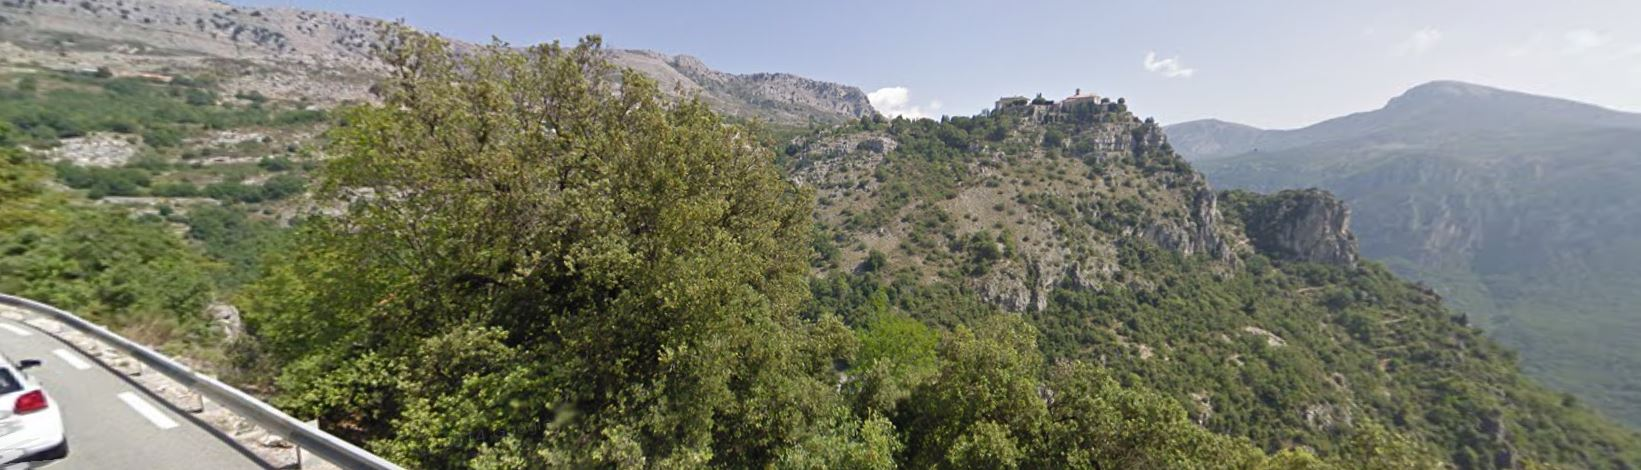 The view on the long slow road to Gourdon.